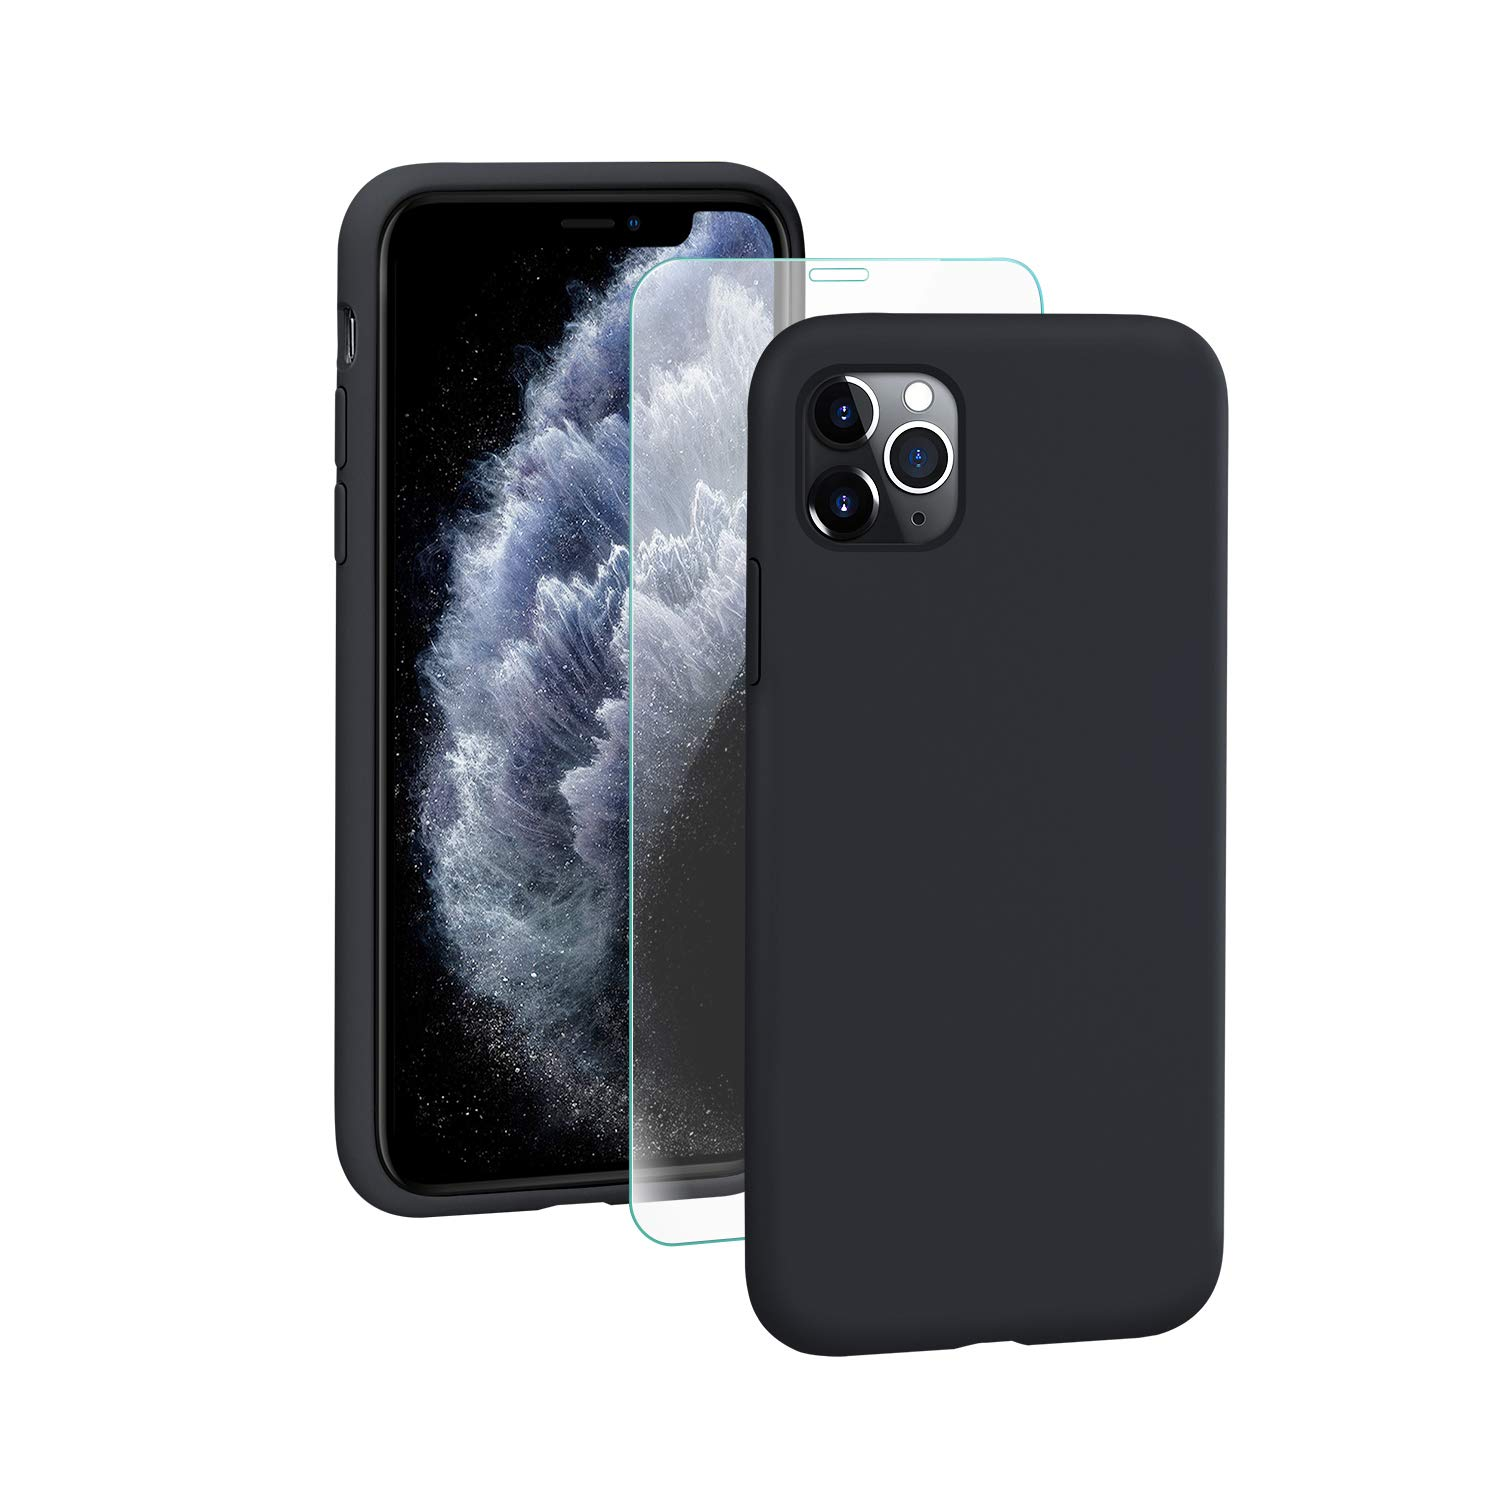 SmartDevil iPhone 11 Pro Max Case,[Fully Protective] Liquid Silicone Gel Rubber Shockproof Case Soft Microfiber Cloth Lining Cushion for iPhone 11 Pro Max- Black